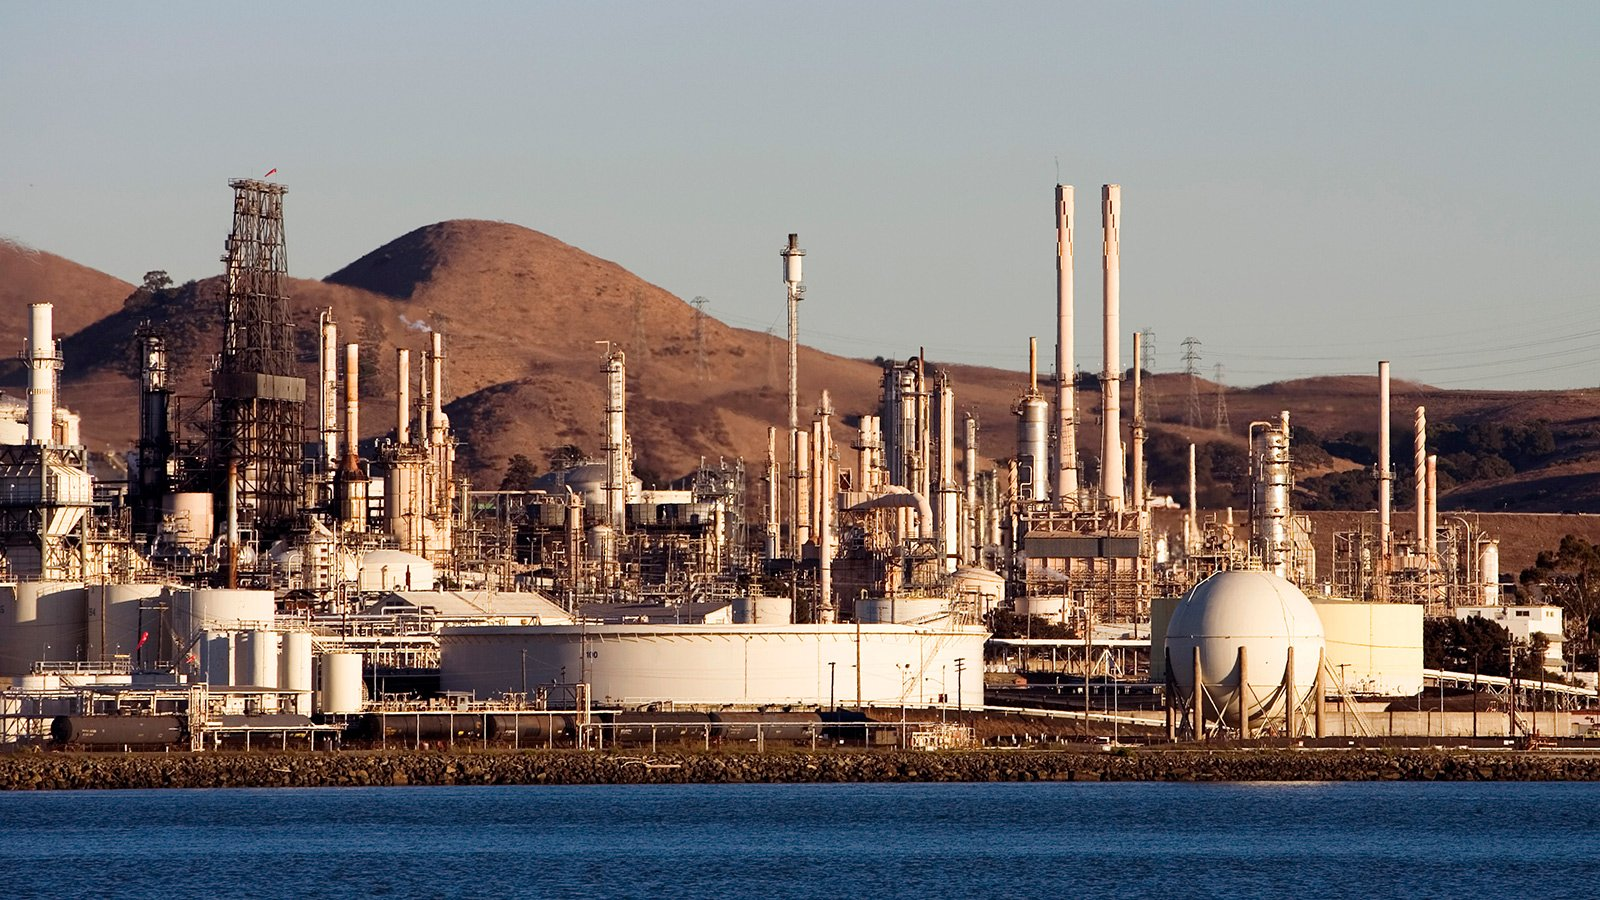 Fossil fuels are the problem say fossil fuel companies being sued 1600x900